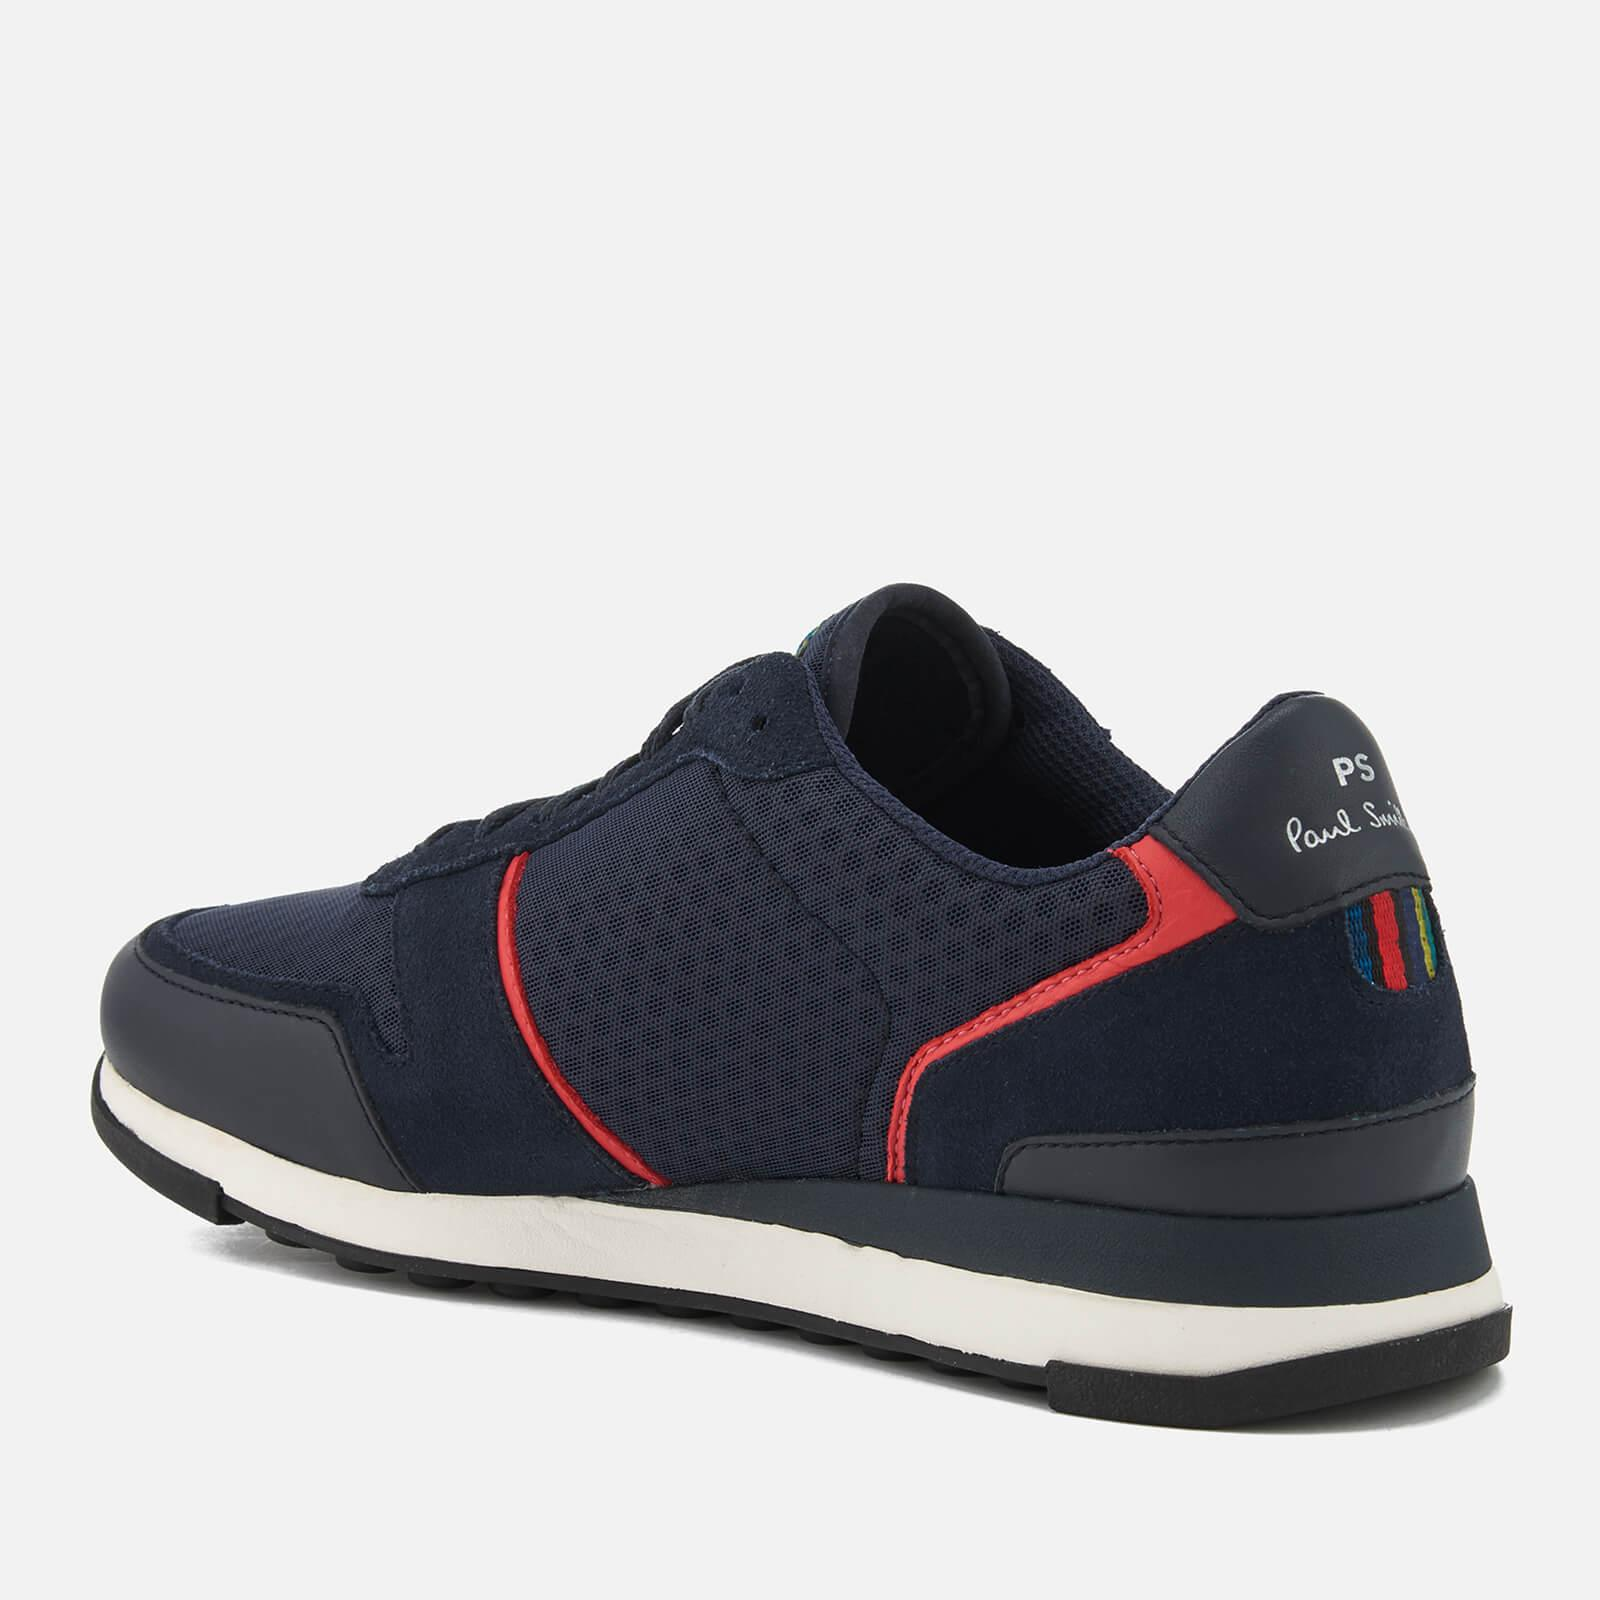 PS by Paul Smith Wilko Leather/mesh Runner Trainers in Navy (Blue) for Men